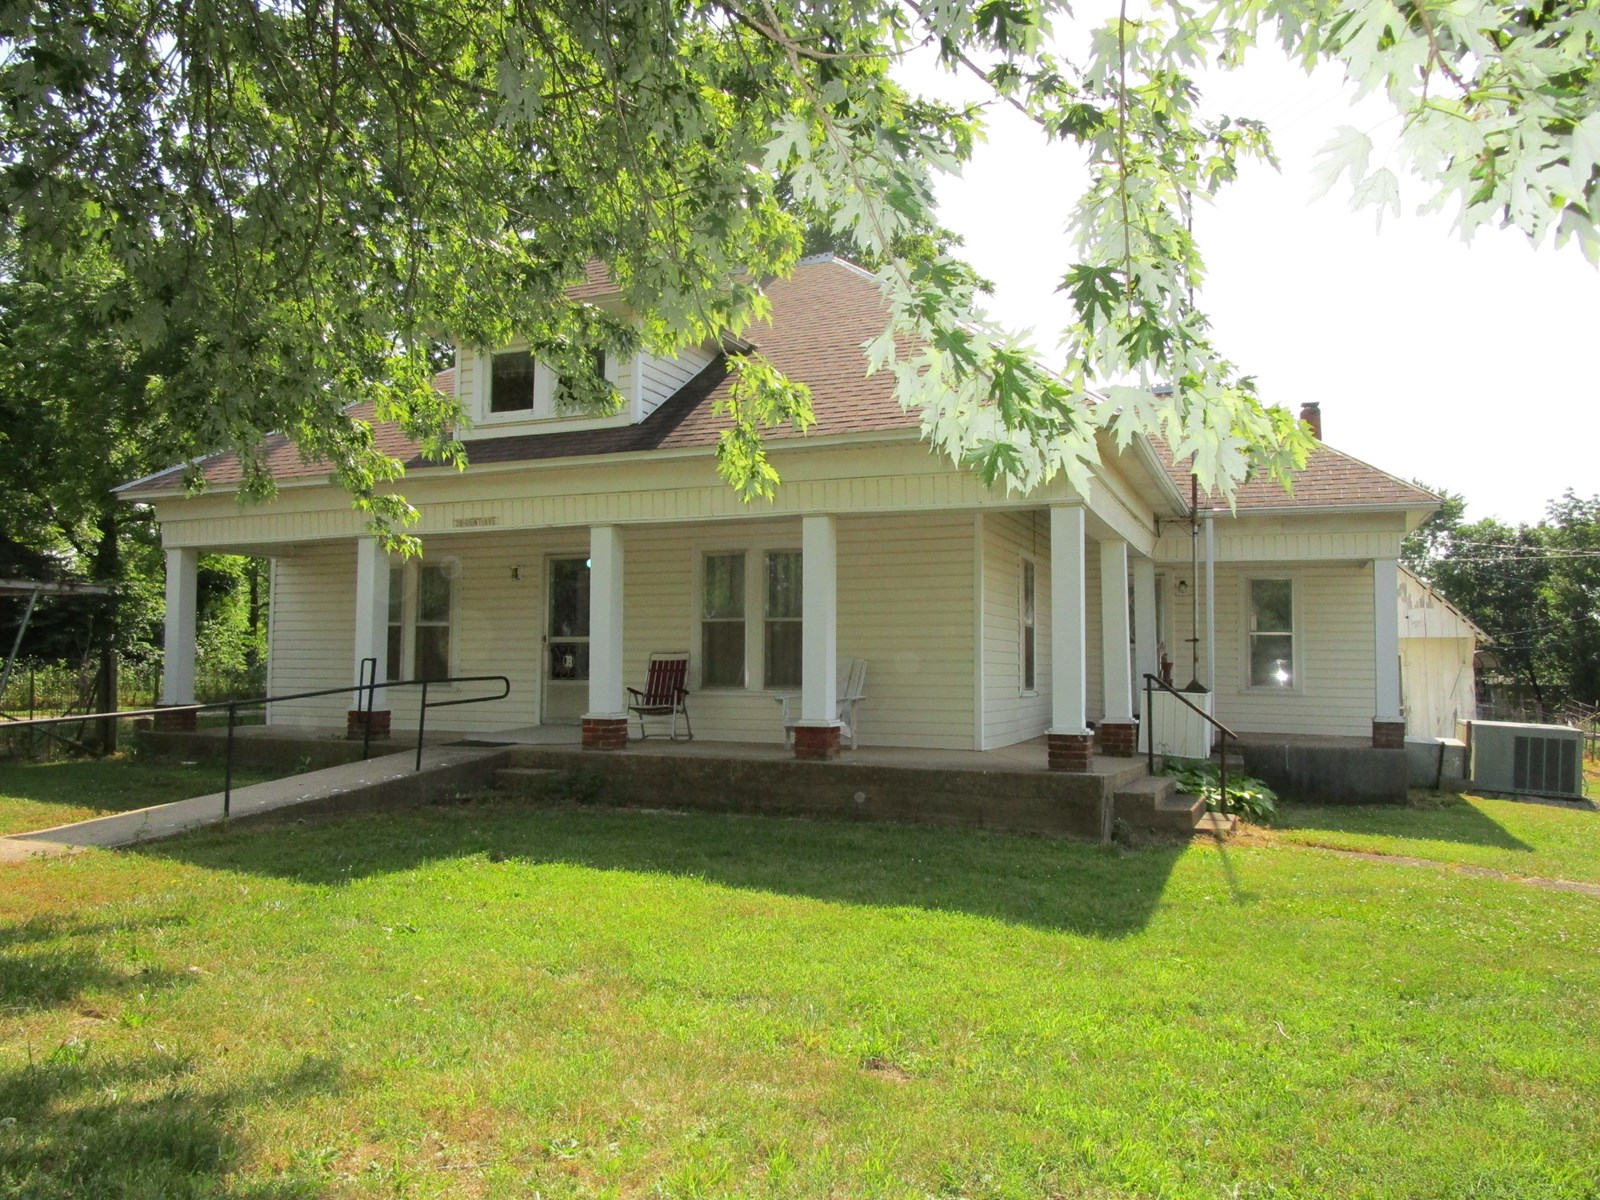 Historic Southern Missouri Home for Sale